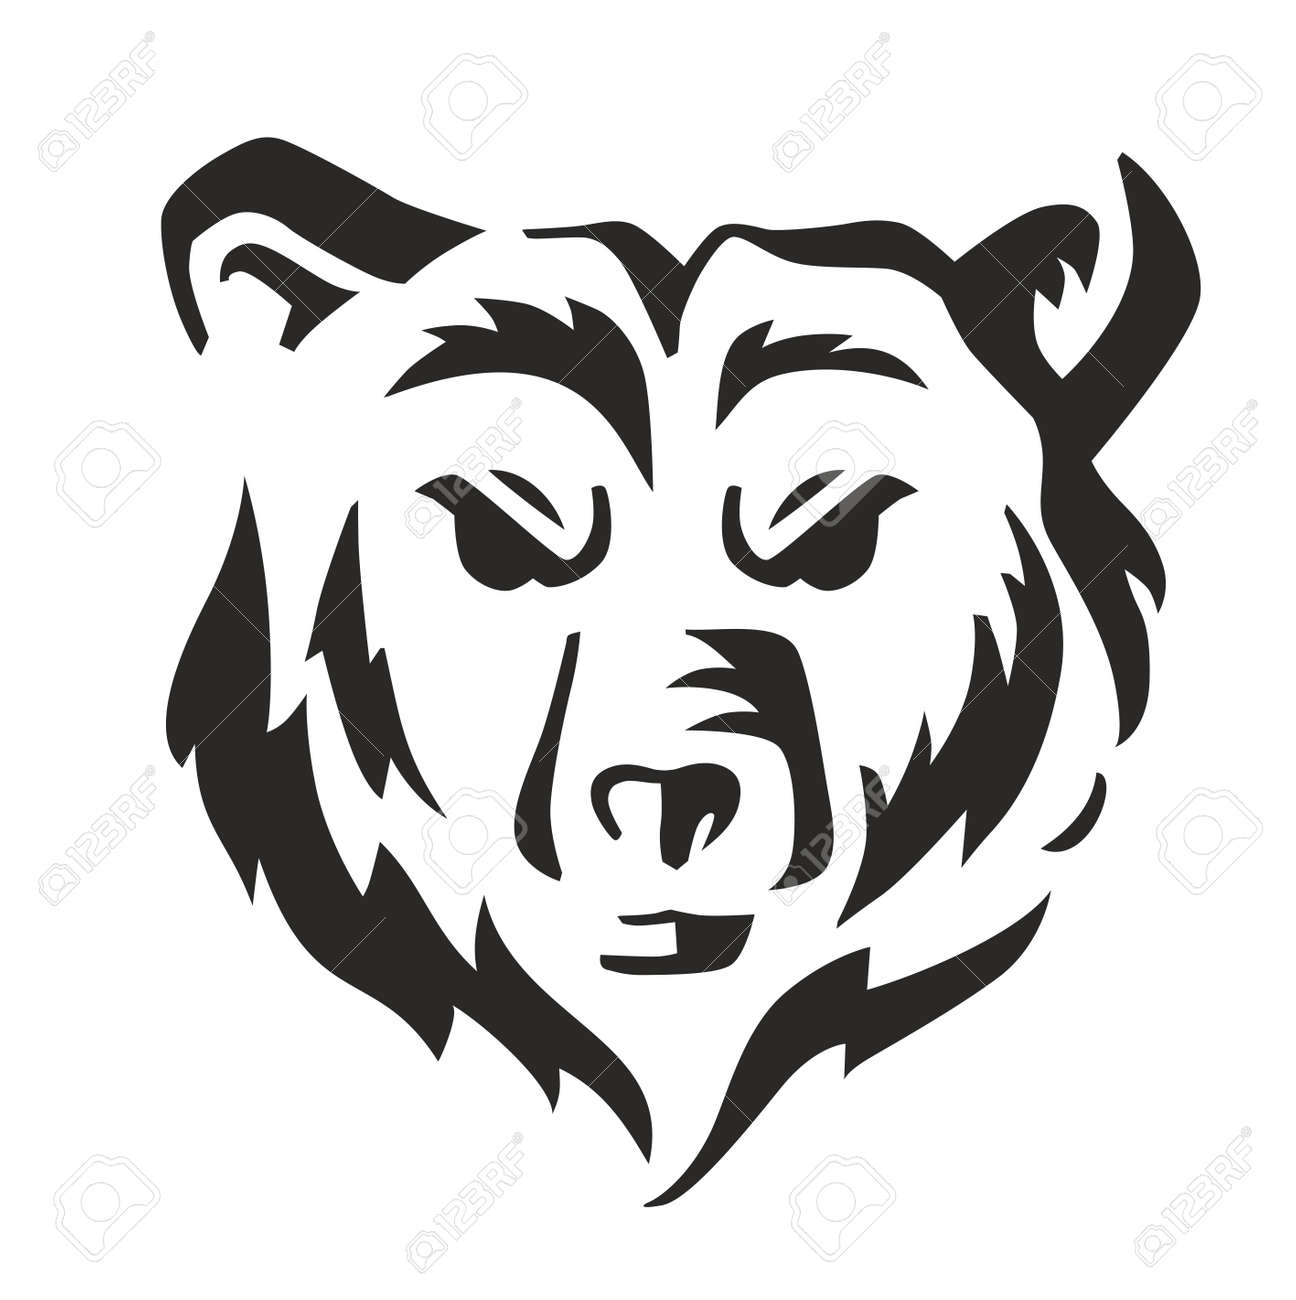 vector black bear icon on white background royalty free cliparts vectors and stock illustration image 55172319 vector black bear icon on white background